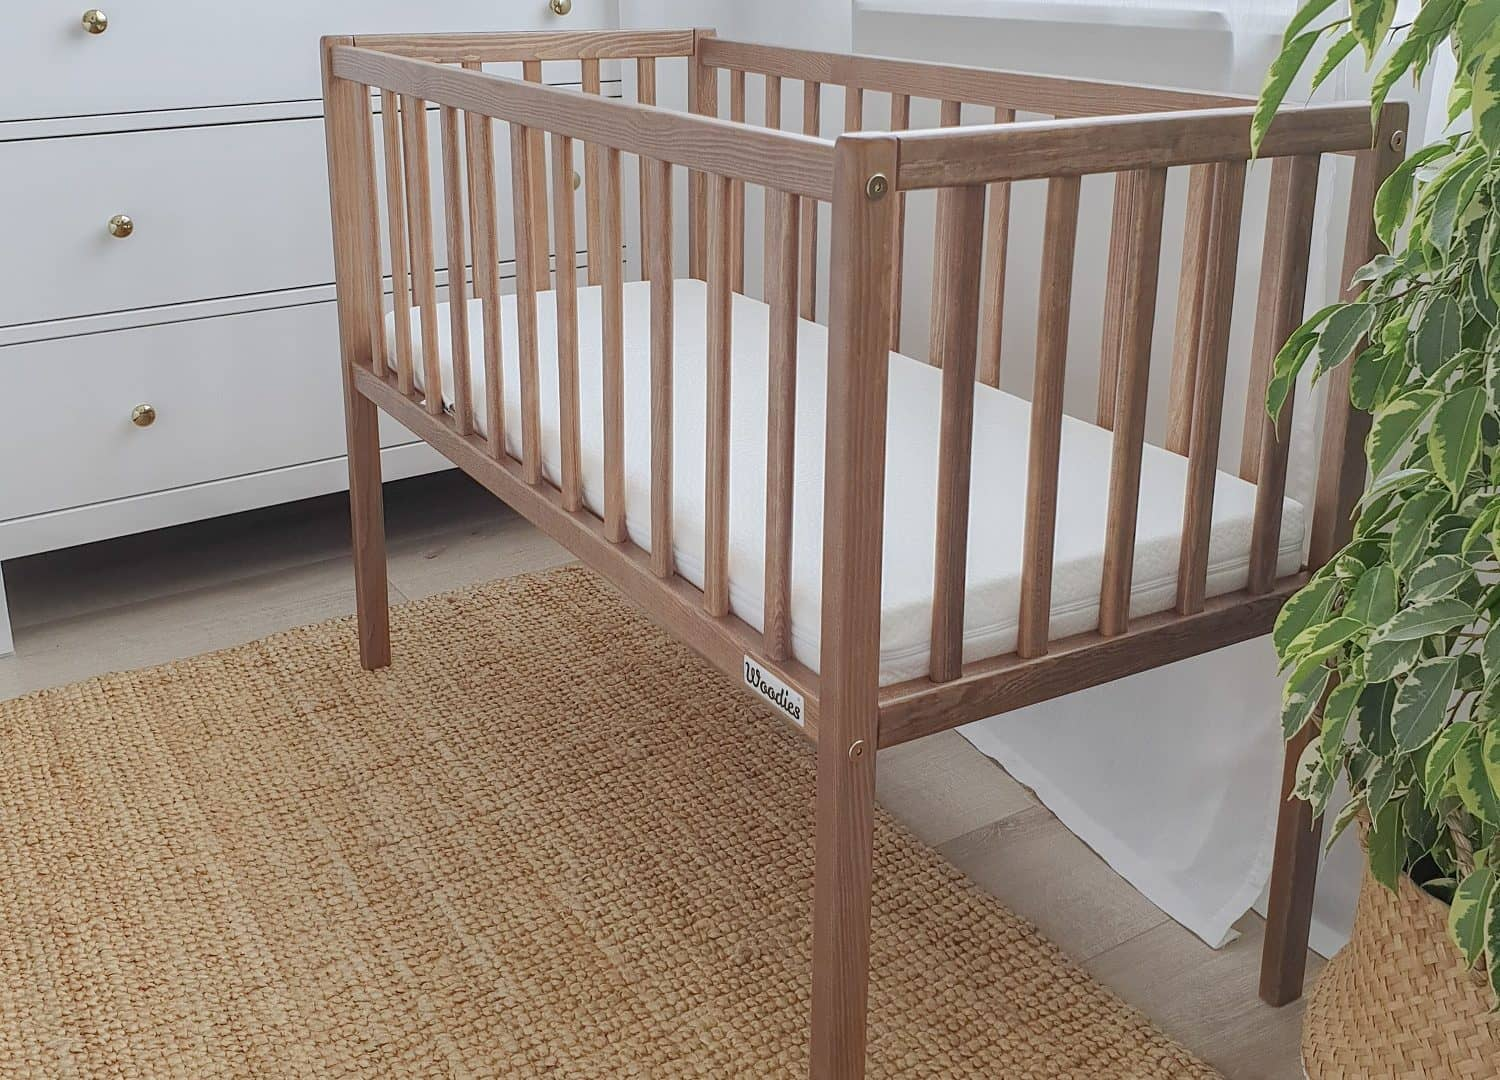 Woodies Nobel Vintage Bedside Crib  - Hola BB